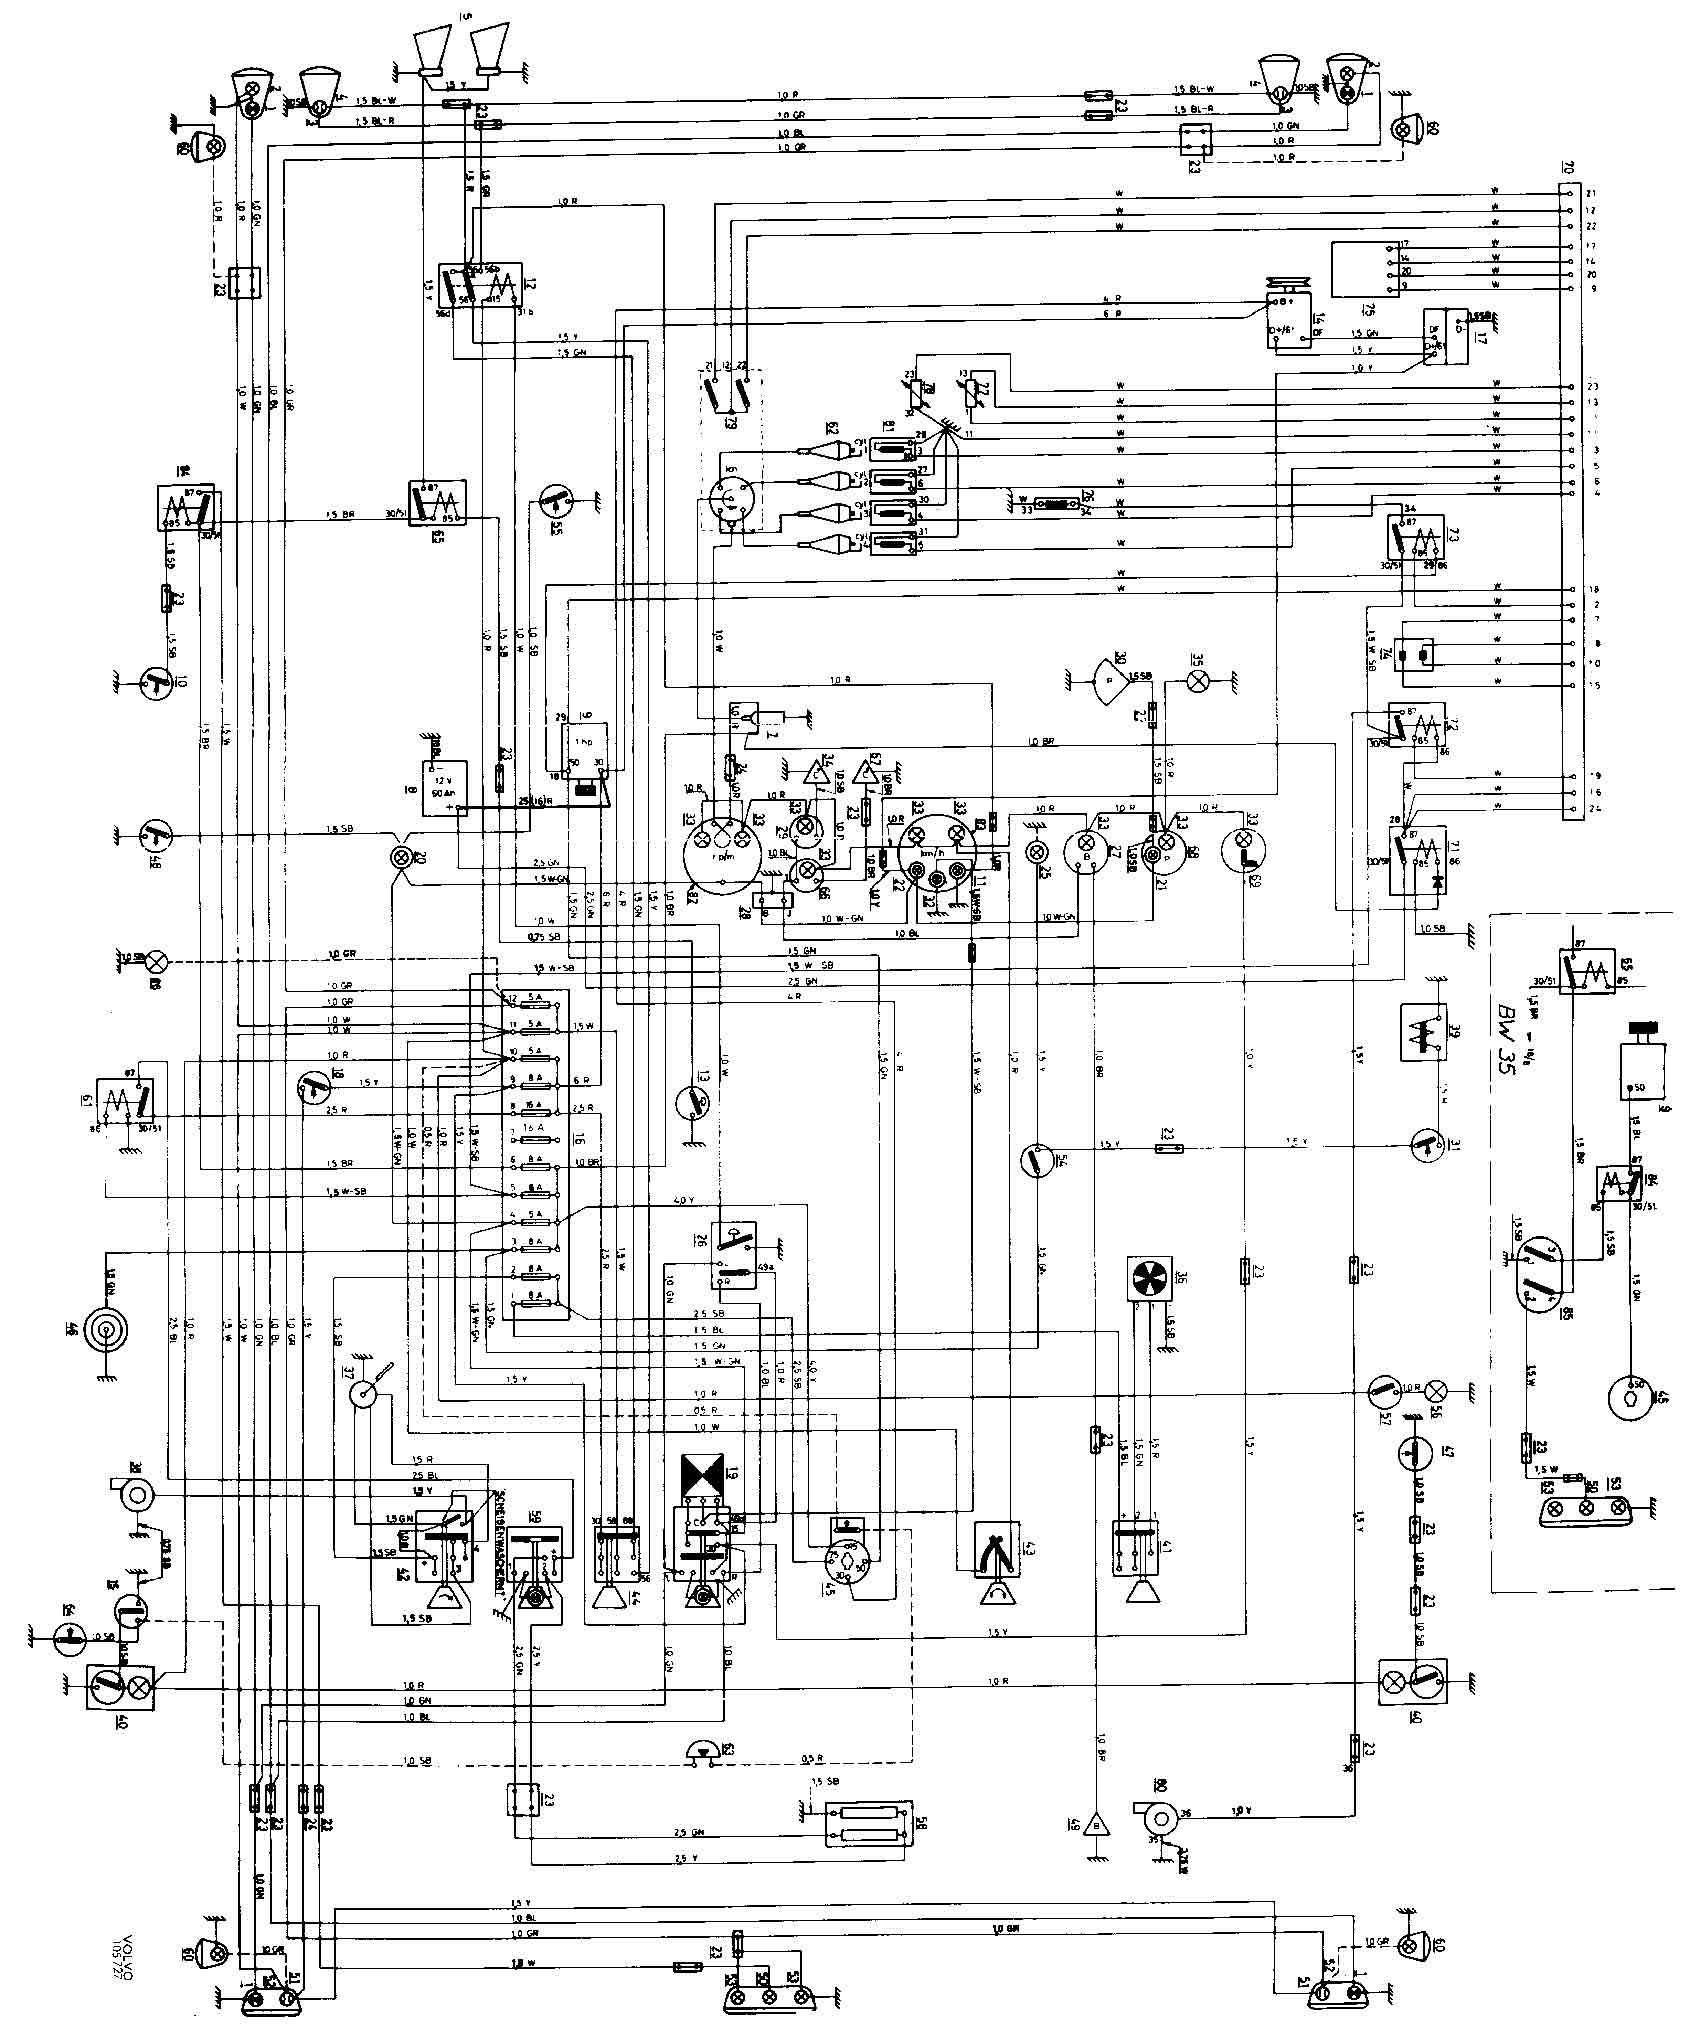 1800E Wiring Diagram micro 850 wiring diagram a b micro 850 \u2022 wiring diagrams j gs850g wiring diagram at n-0.co